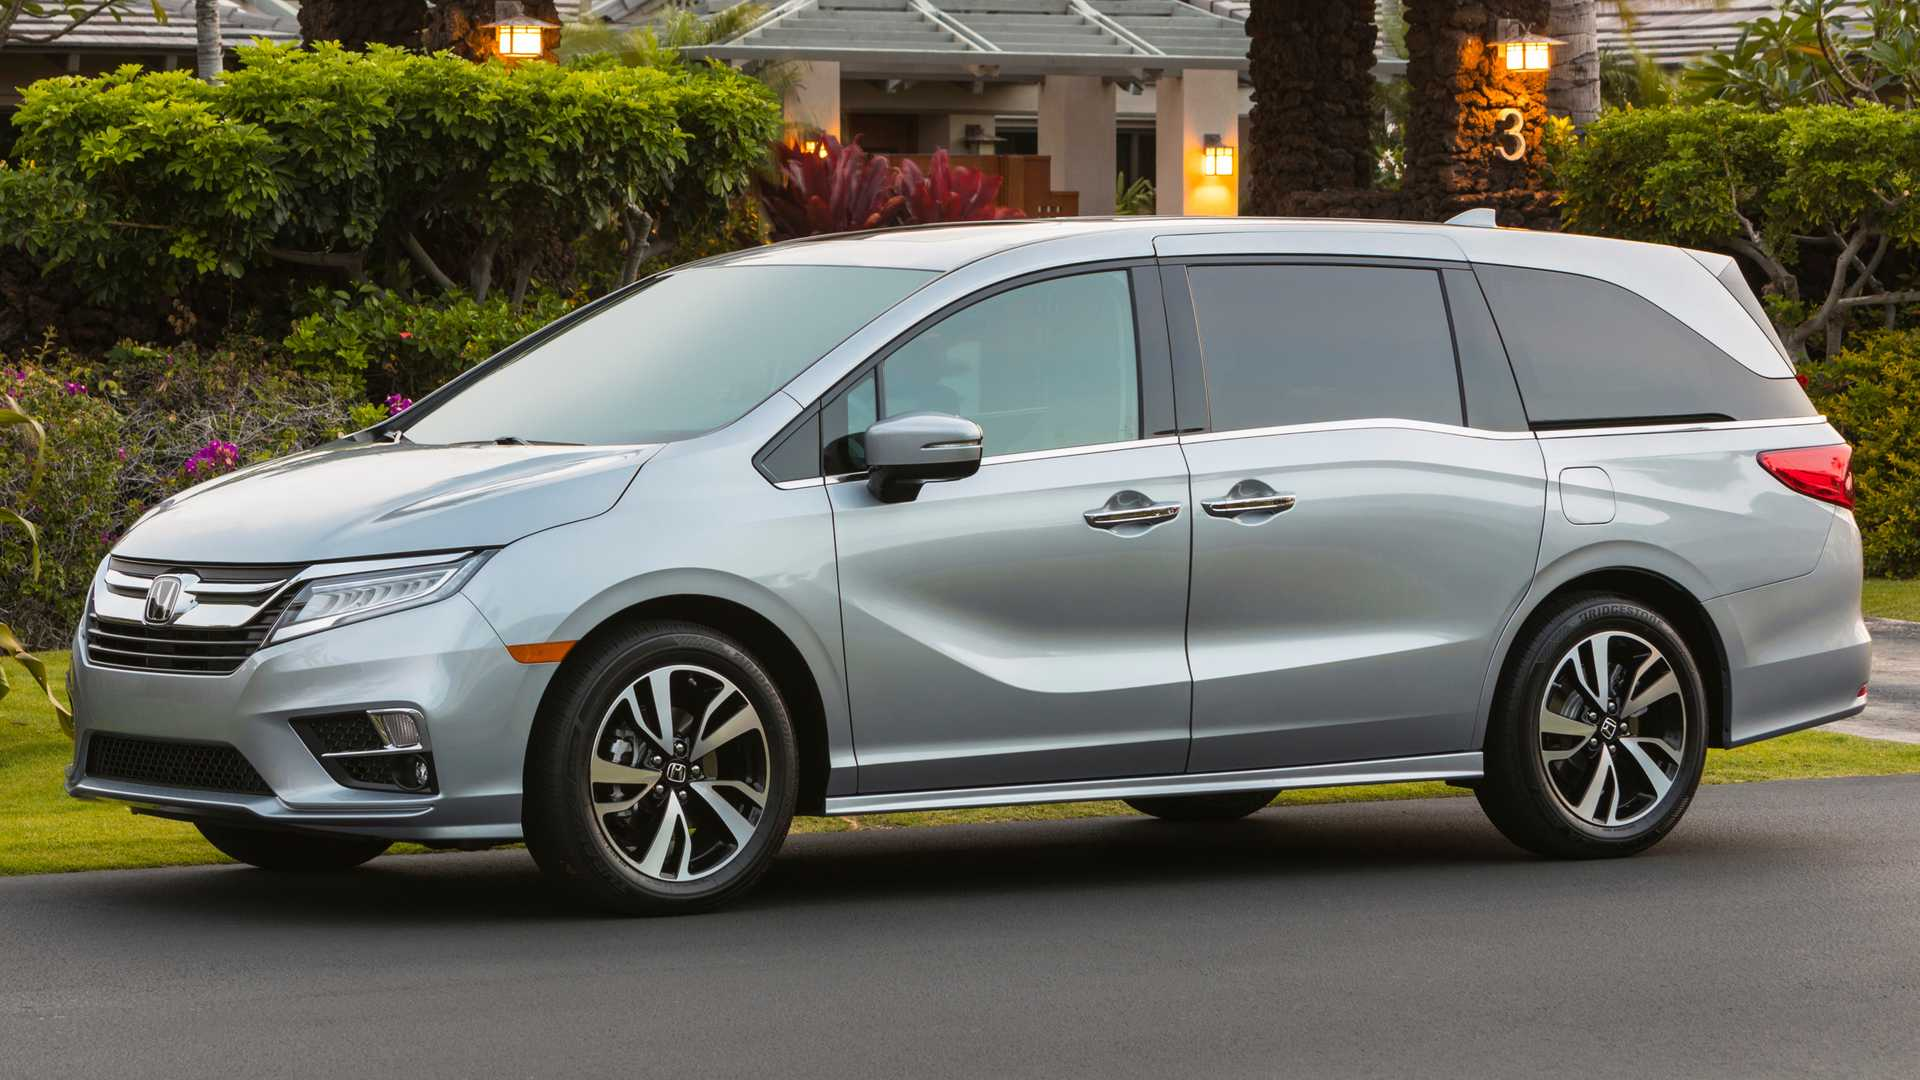 49 Concept of When Will 2020 Honda Odyssey Come Out Overview for When Will 2020 Honda Odyssey Come Out